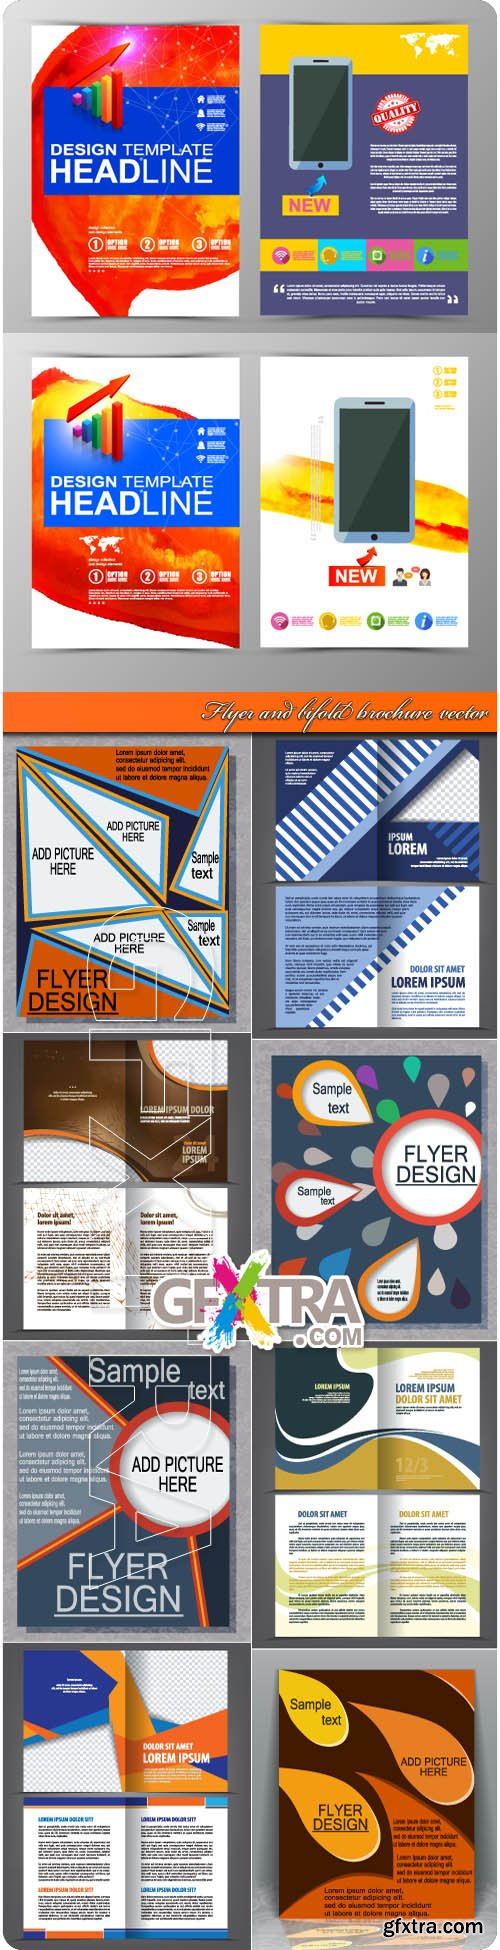 Flyer and bifold brochure vector